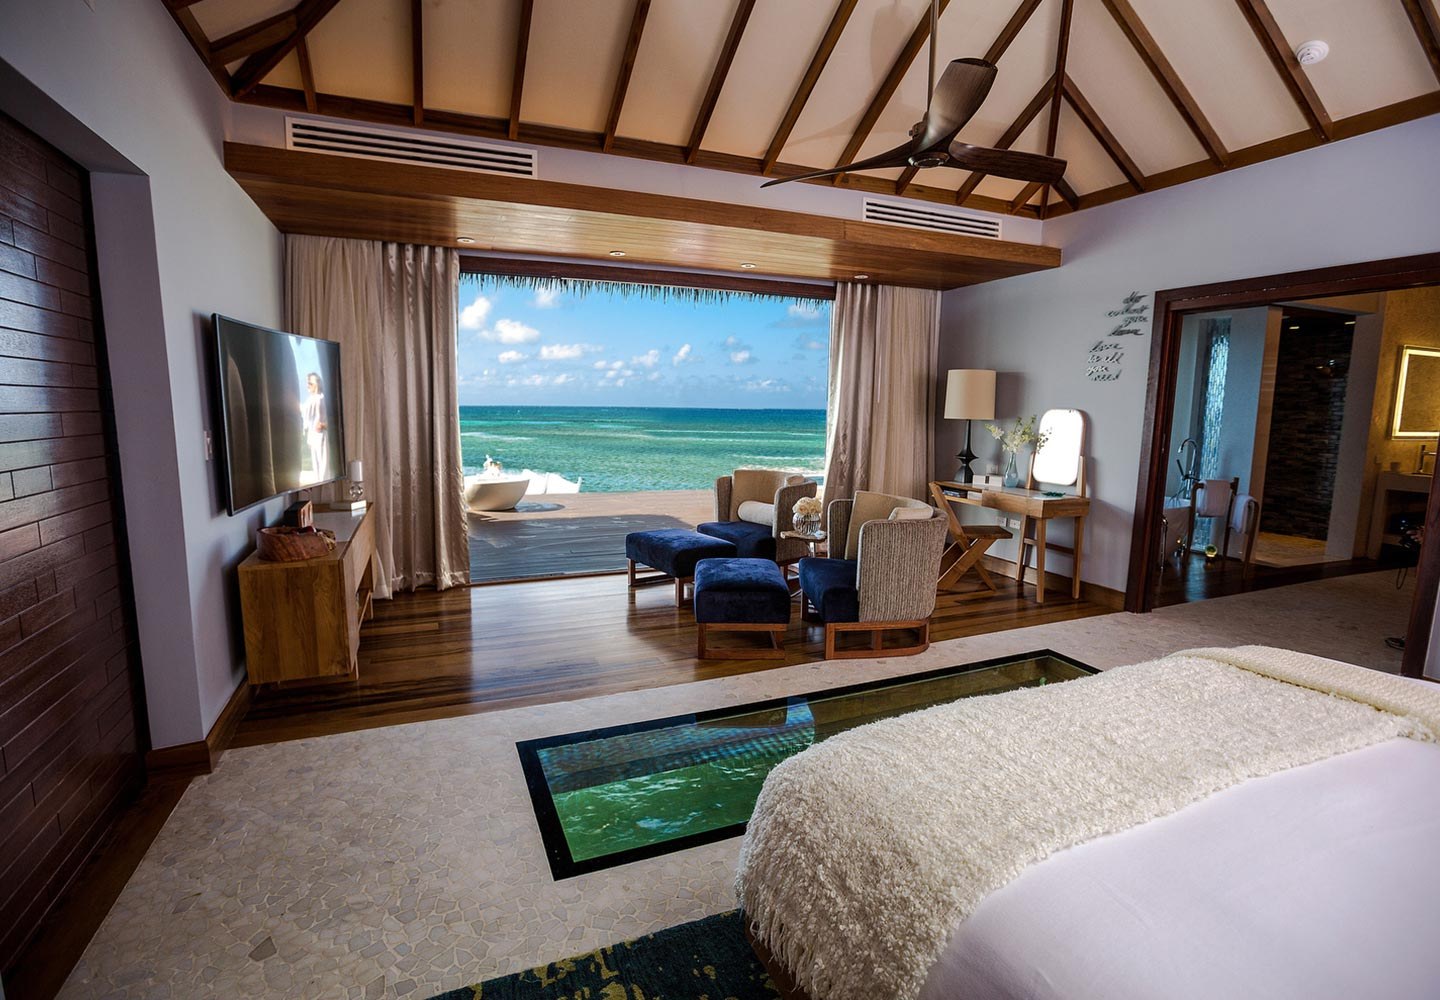 What Do The Over Water Bungalows Cost